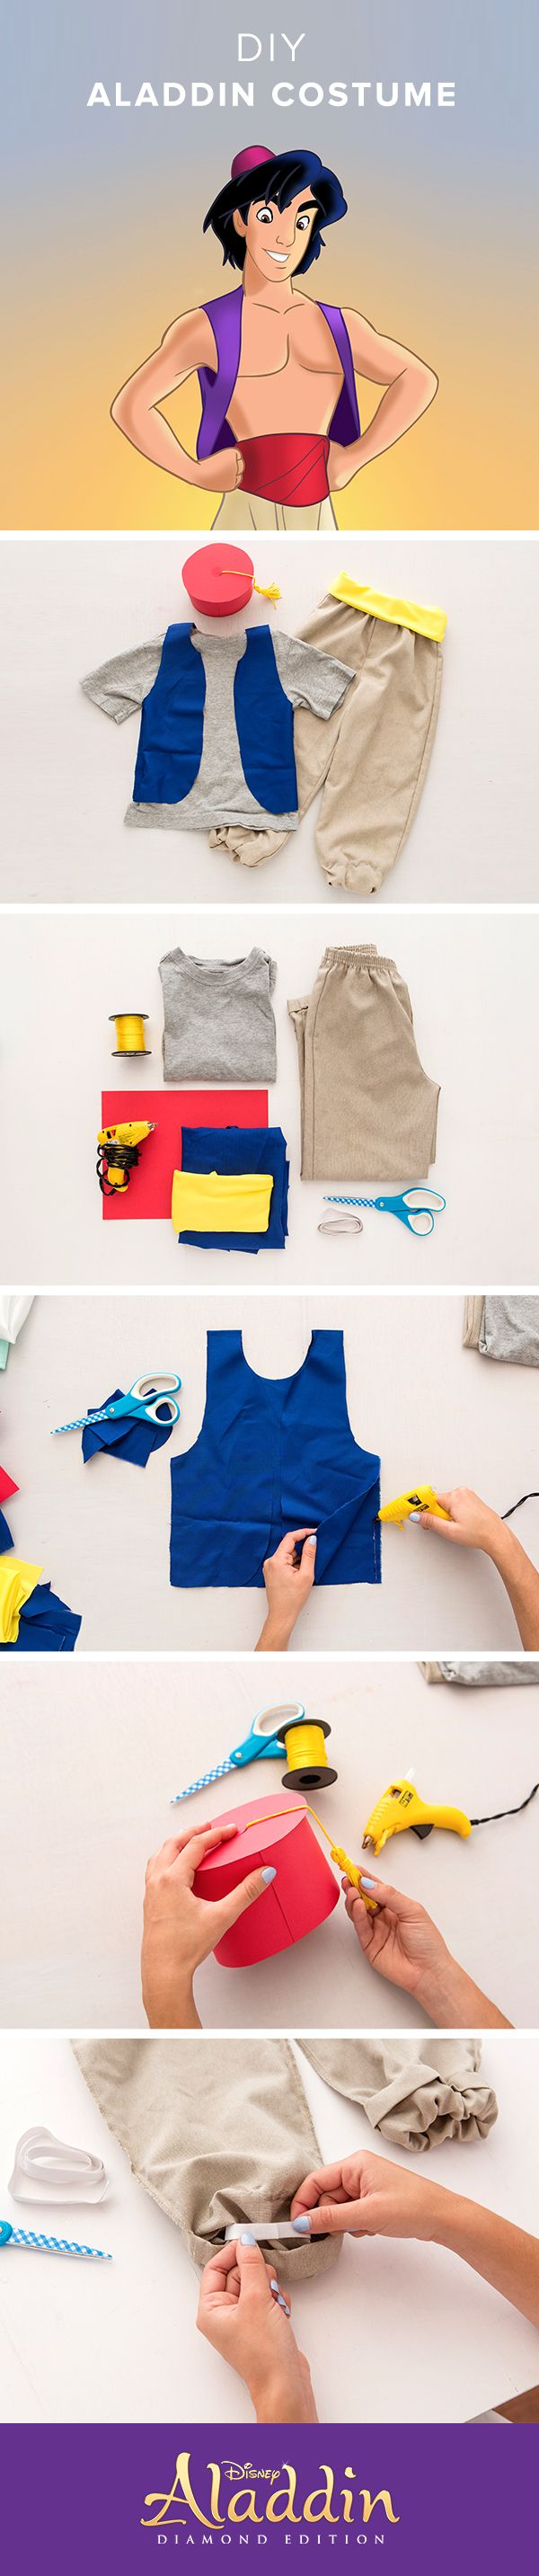 This Halloween, make your own Disney Aladdin Costume! Instructions: Use red paper and gold string to create a tasseled hat. DIY your own vest by using blue fabric. Fold in half and then cut out arm and neck holes. Use hot glue to glue the sides together. Fold over the bottom edge of the pants and use hot glue to make a hem. Leave an opening so you are able to insert elastic. Use hot glue to attach the ends of elastic together and close up the rest of the hem.